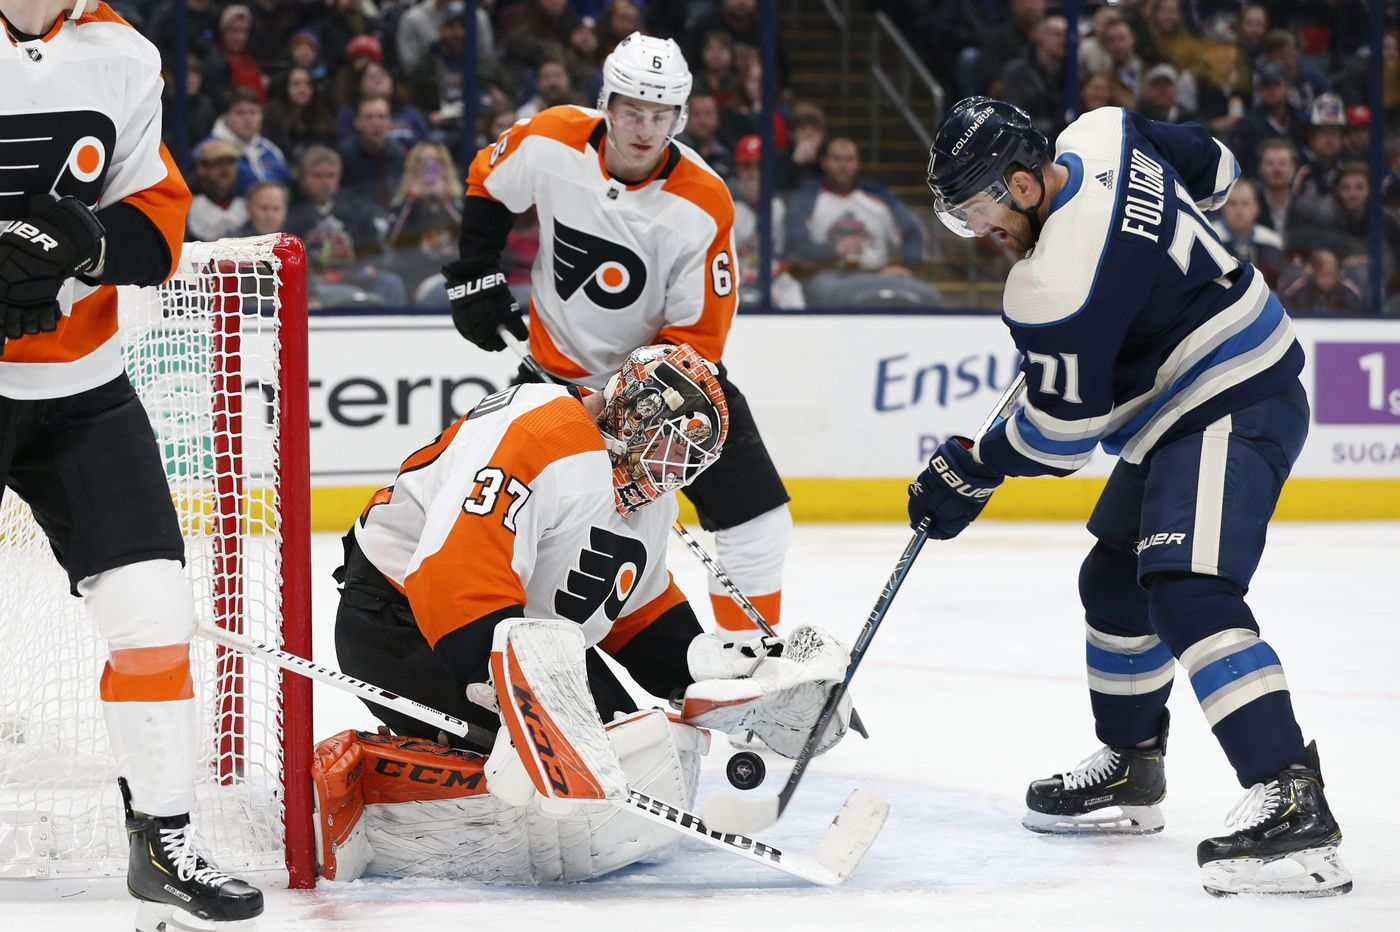 Kevin Hayes' OT goal gives Flyers 4-3 win over Columbus Blue Jackets